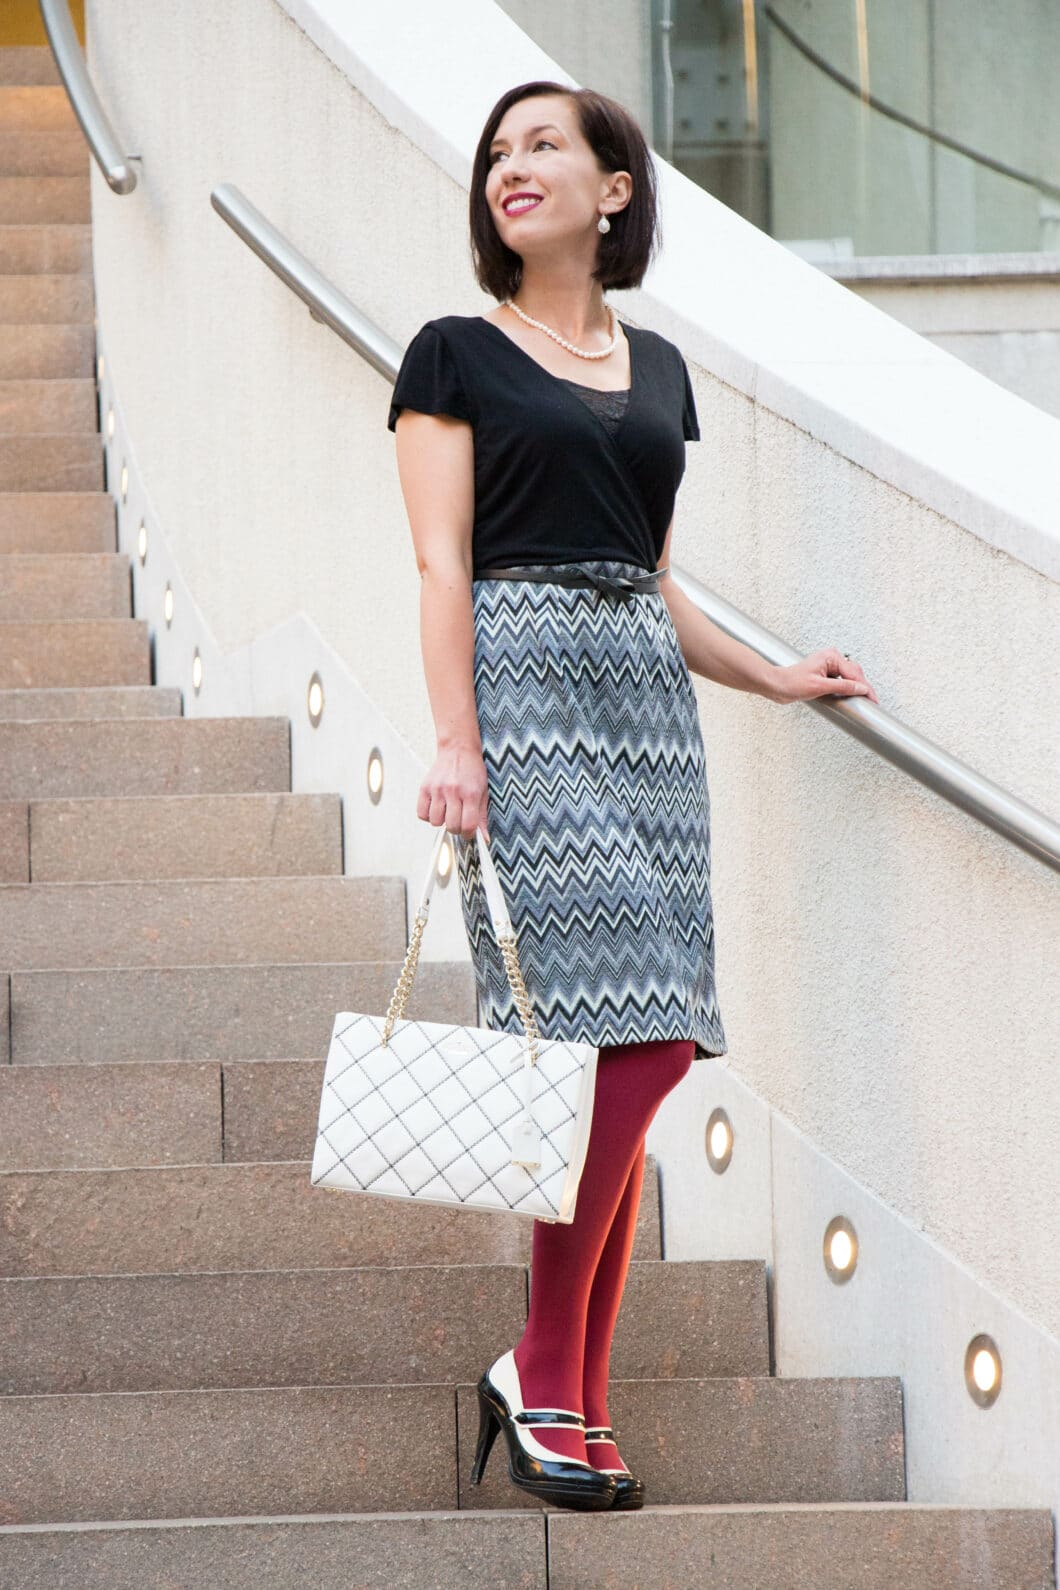 MODCLOTH DRESS - KATE SPADE BAG